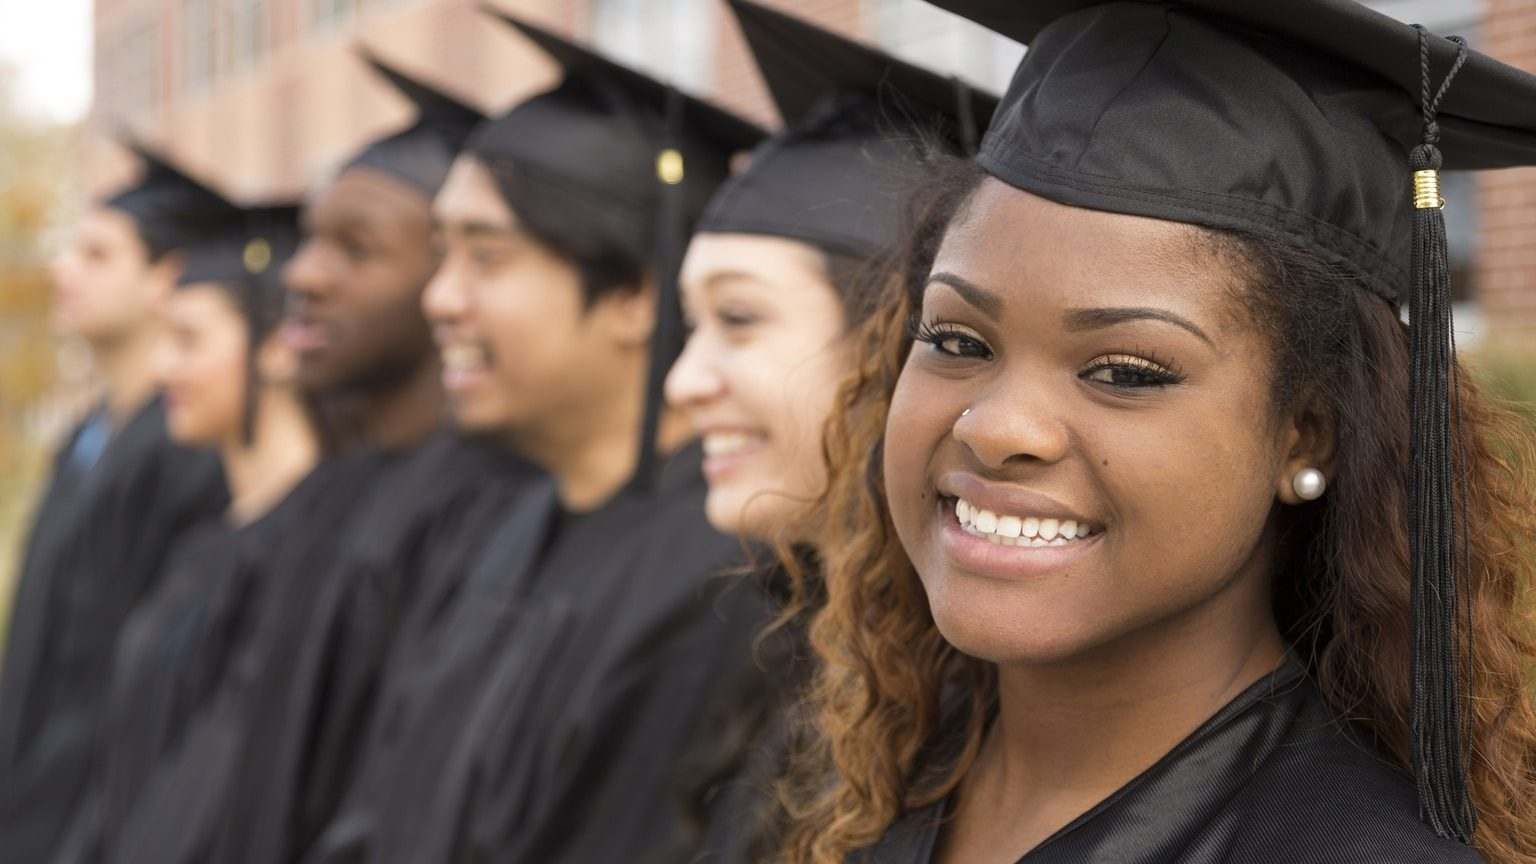 Smiling woman in row of graduates, high school, college, university